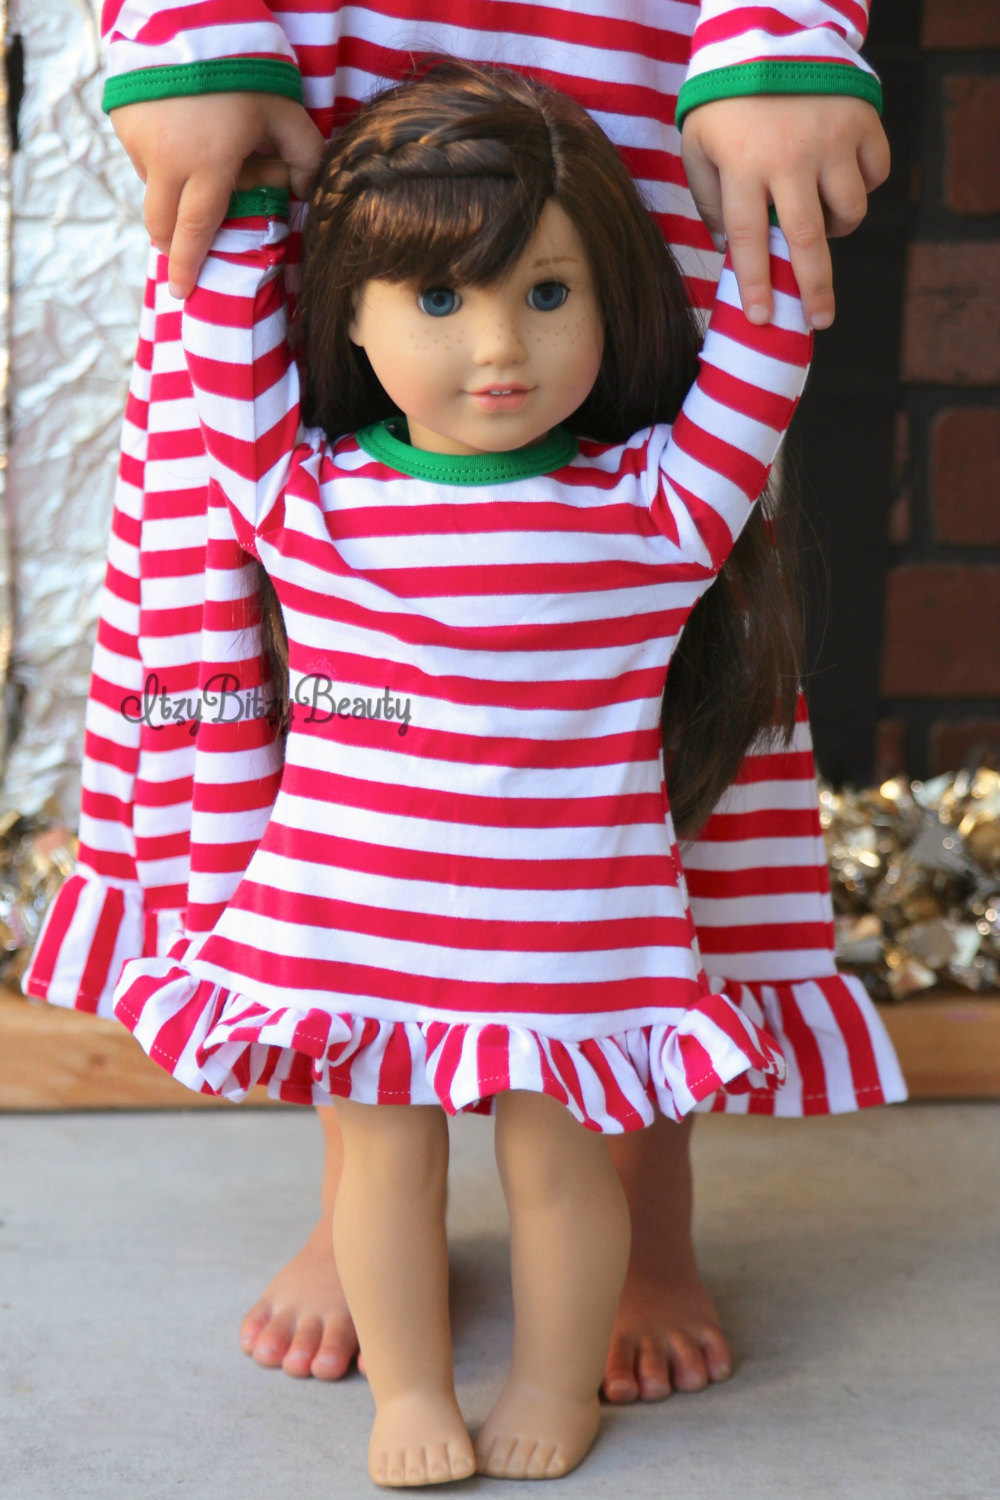 Matching Girl And Doll Christmas dress;Dollie And Me;Christmas nightgown;Christmas Eve Box;Matching 18 Girl Doll Clothes luminarc салатник luminarc nordic epona 18 см